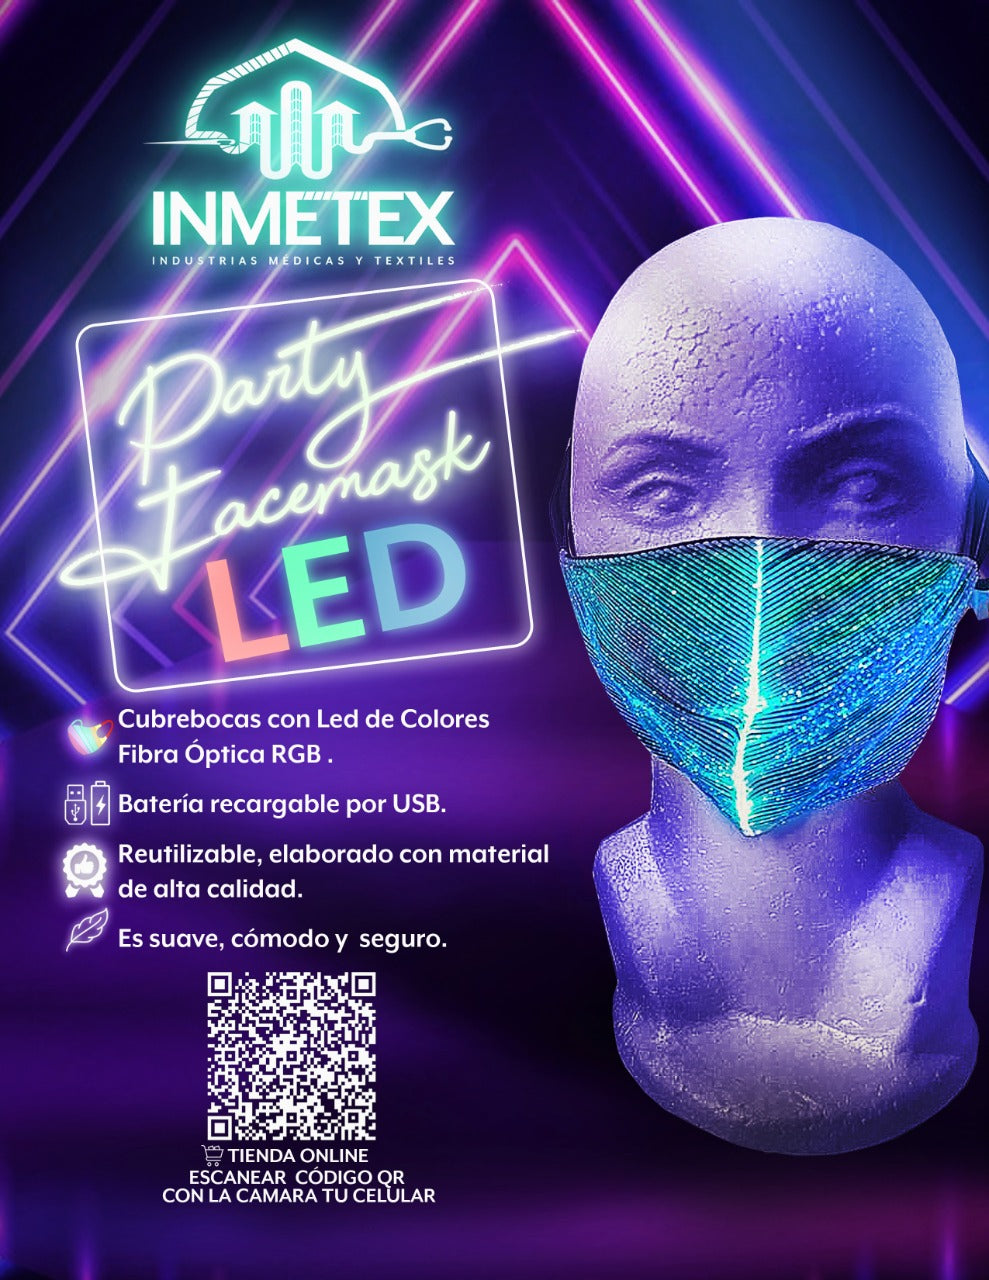 PARTY FACEMASK LED